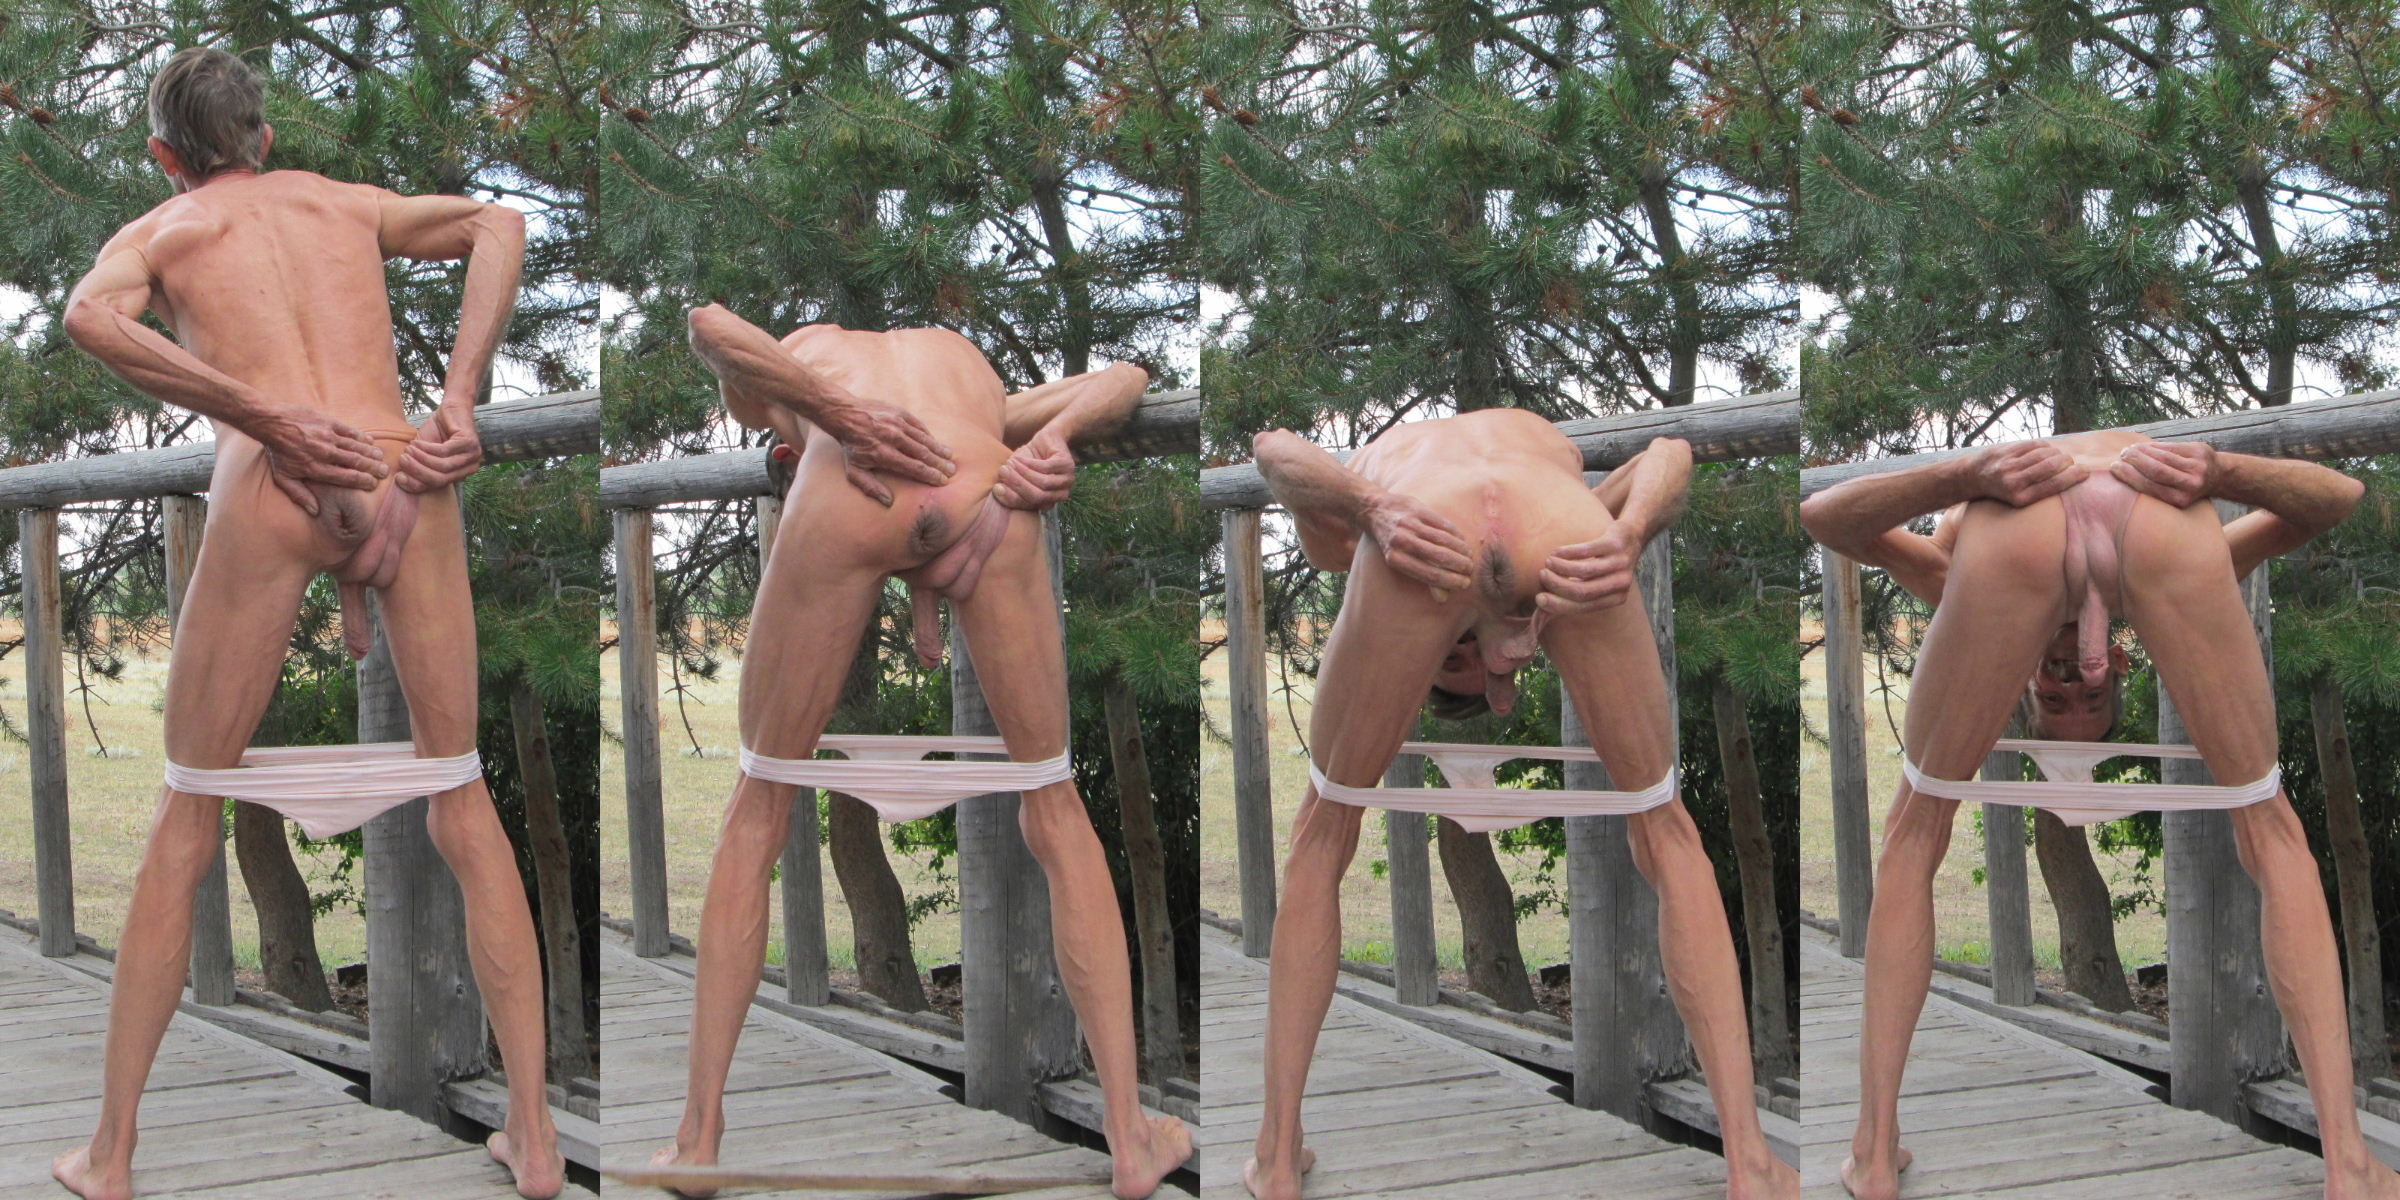 Outdoors in Panties and Fist Fucked In the Ass